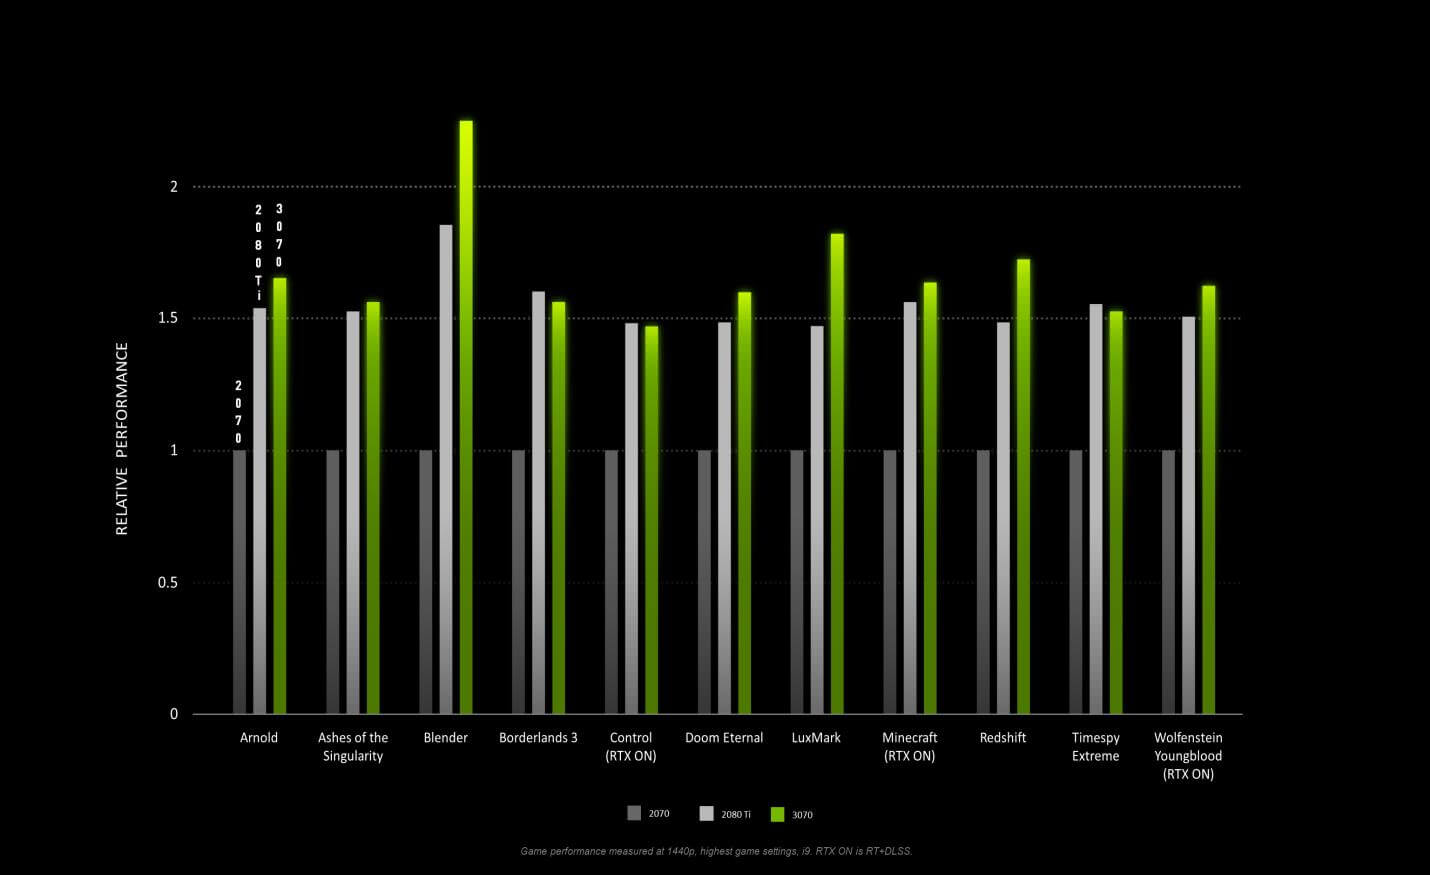 NVIDIA-first-party-gaming-benchmarks